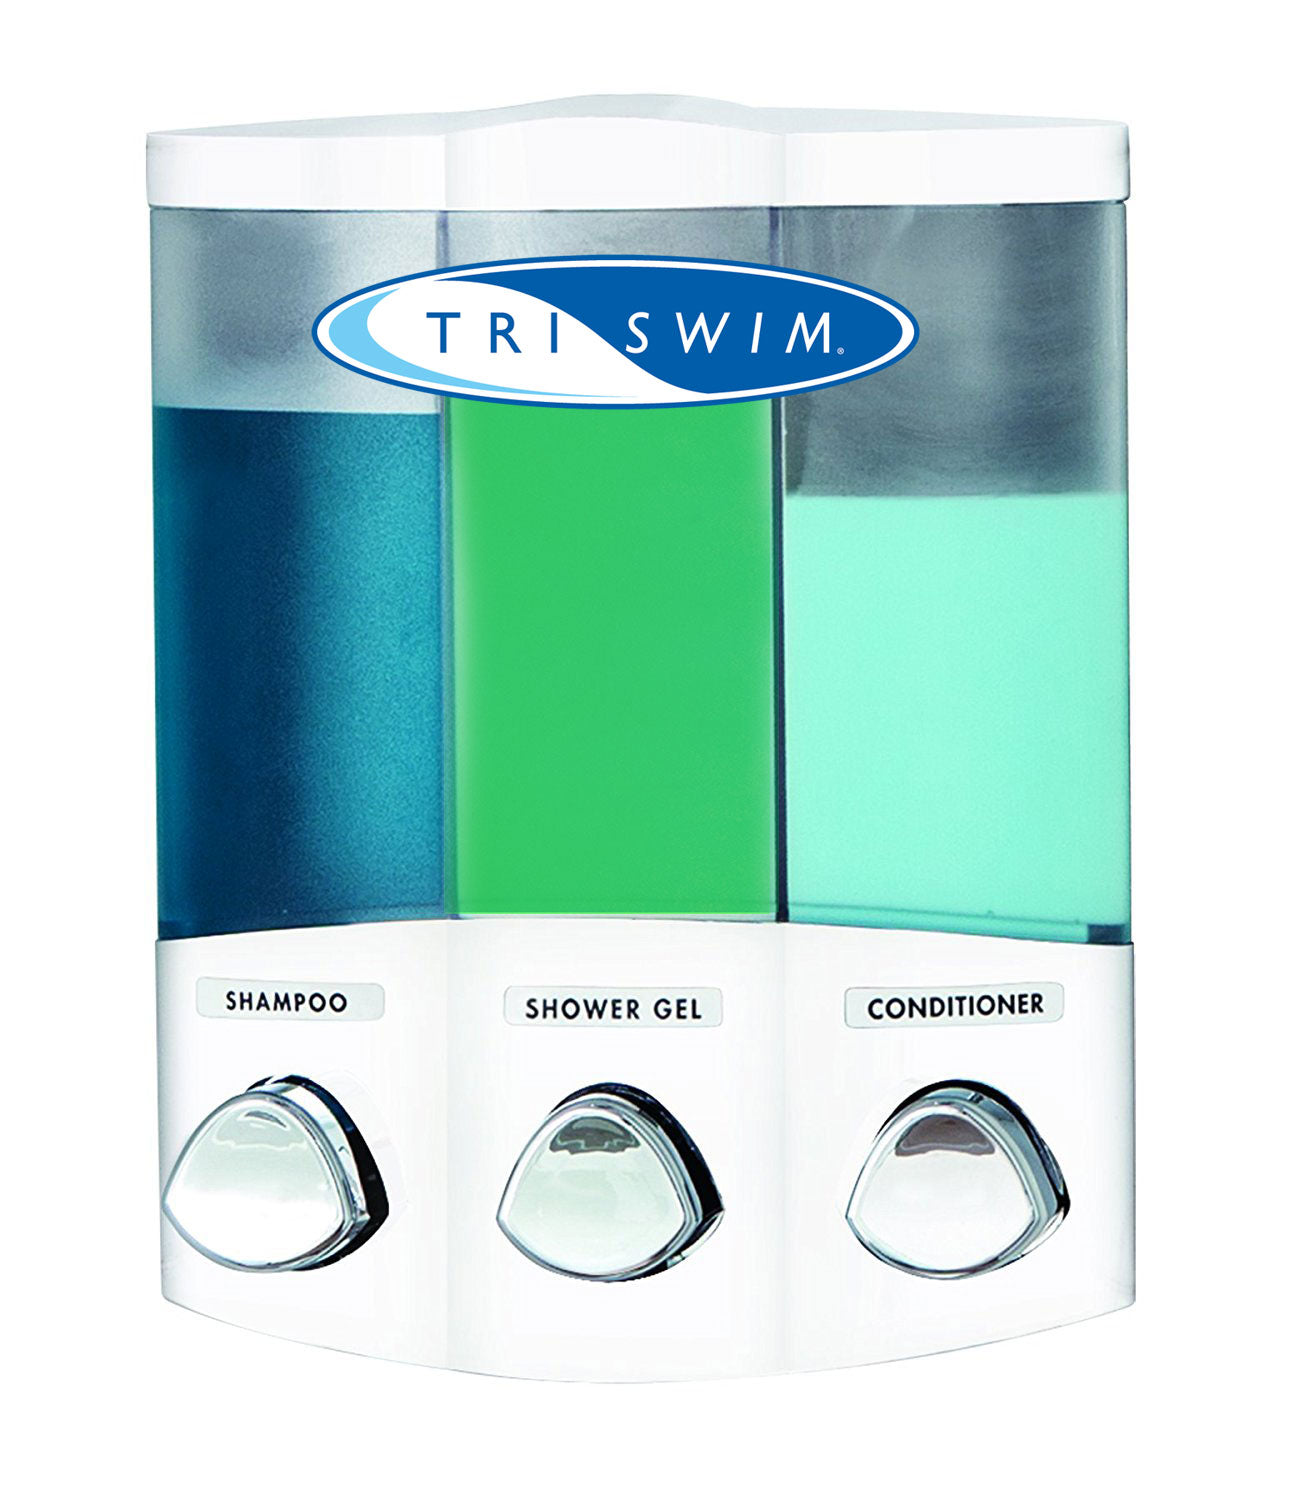 TRISWIM Shampoo / Conditioner / Body Wash DISPENSER